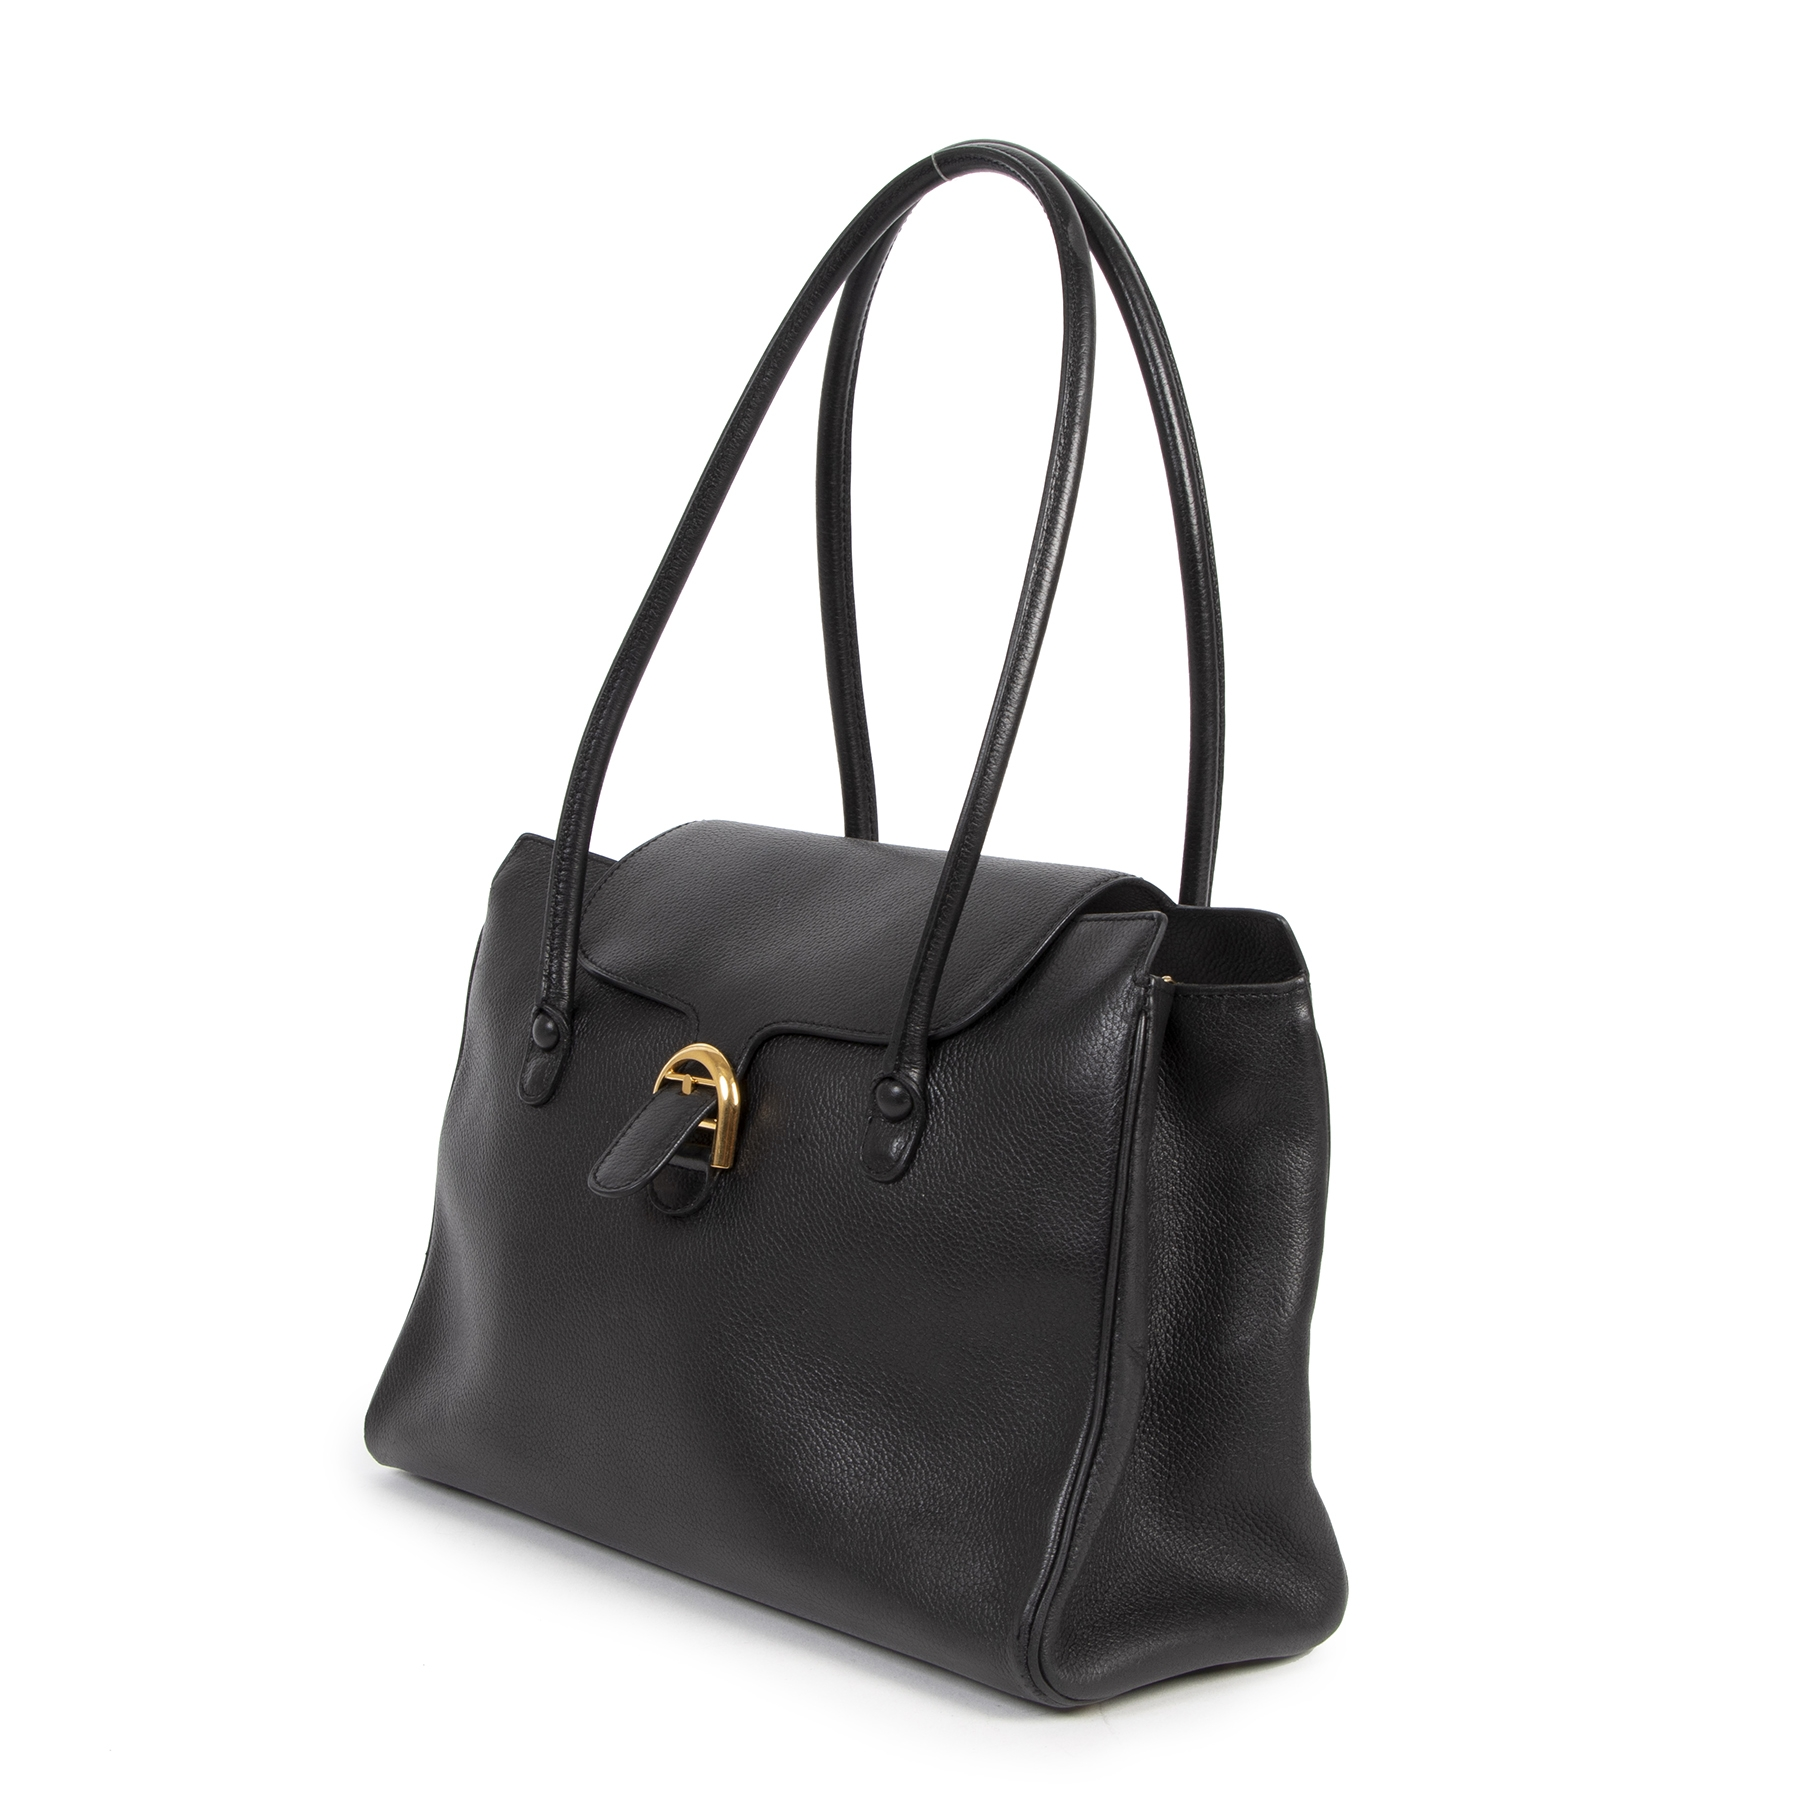 Buy Authentic secondhand Delvaux Black Top Handle Shoulder Bag at the right price safe and secure online at LabelLOV webshop Antwerp Belgium